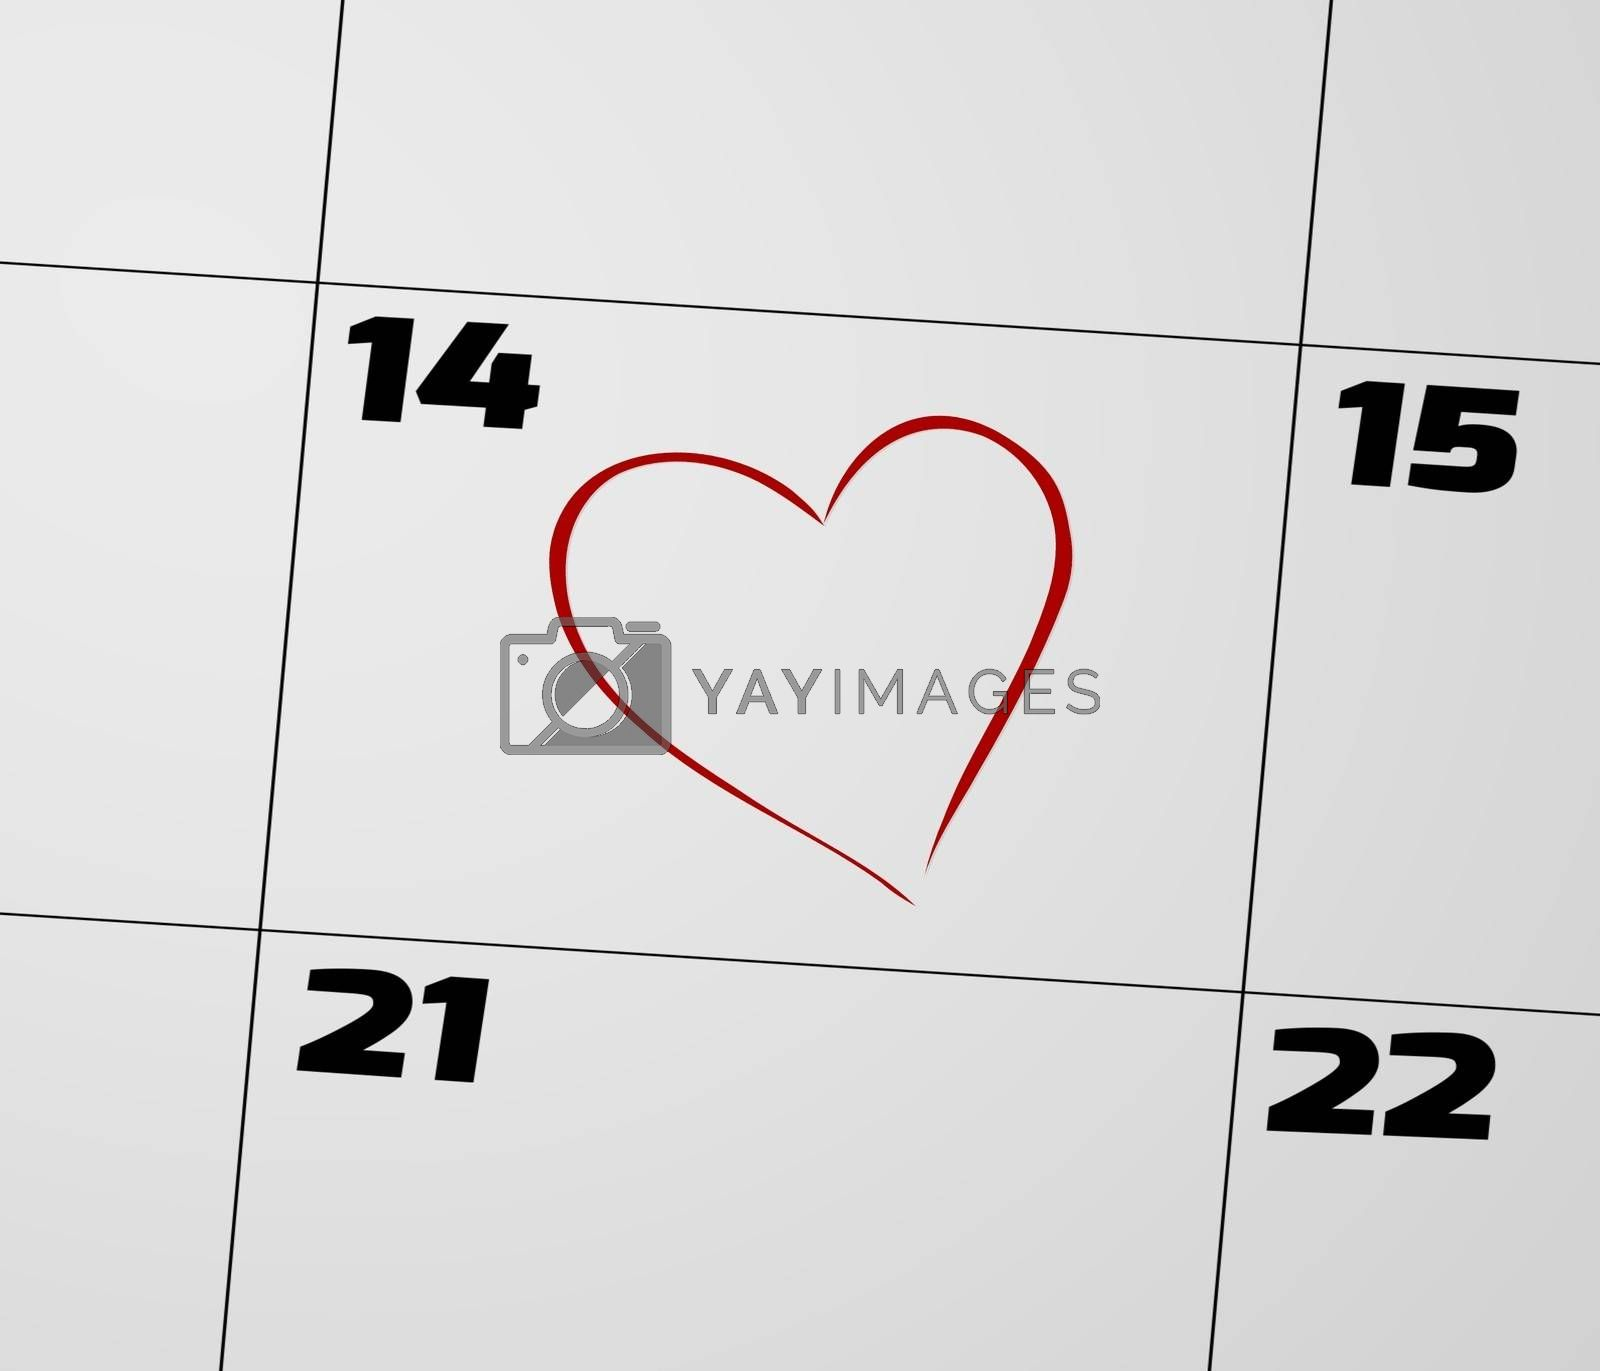 Illustration of a calendar page focusing on the 14th and marked with a red love heart